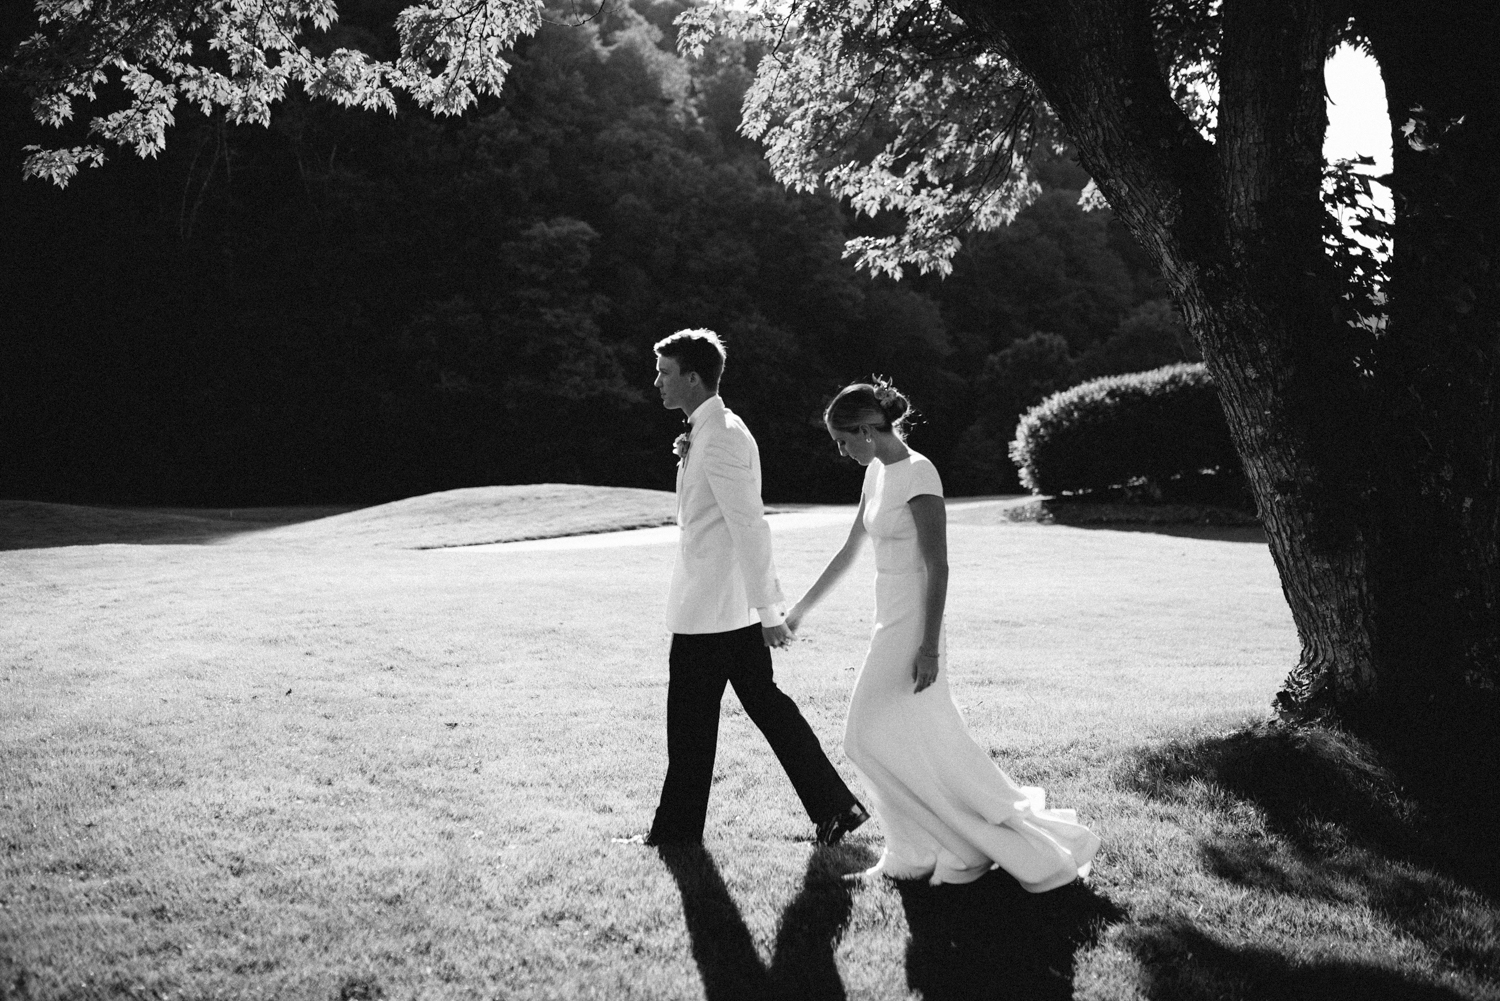 Poetry-&-motion-wedding-photography-elk-river-club-emily-&-chad26.jpg